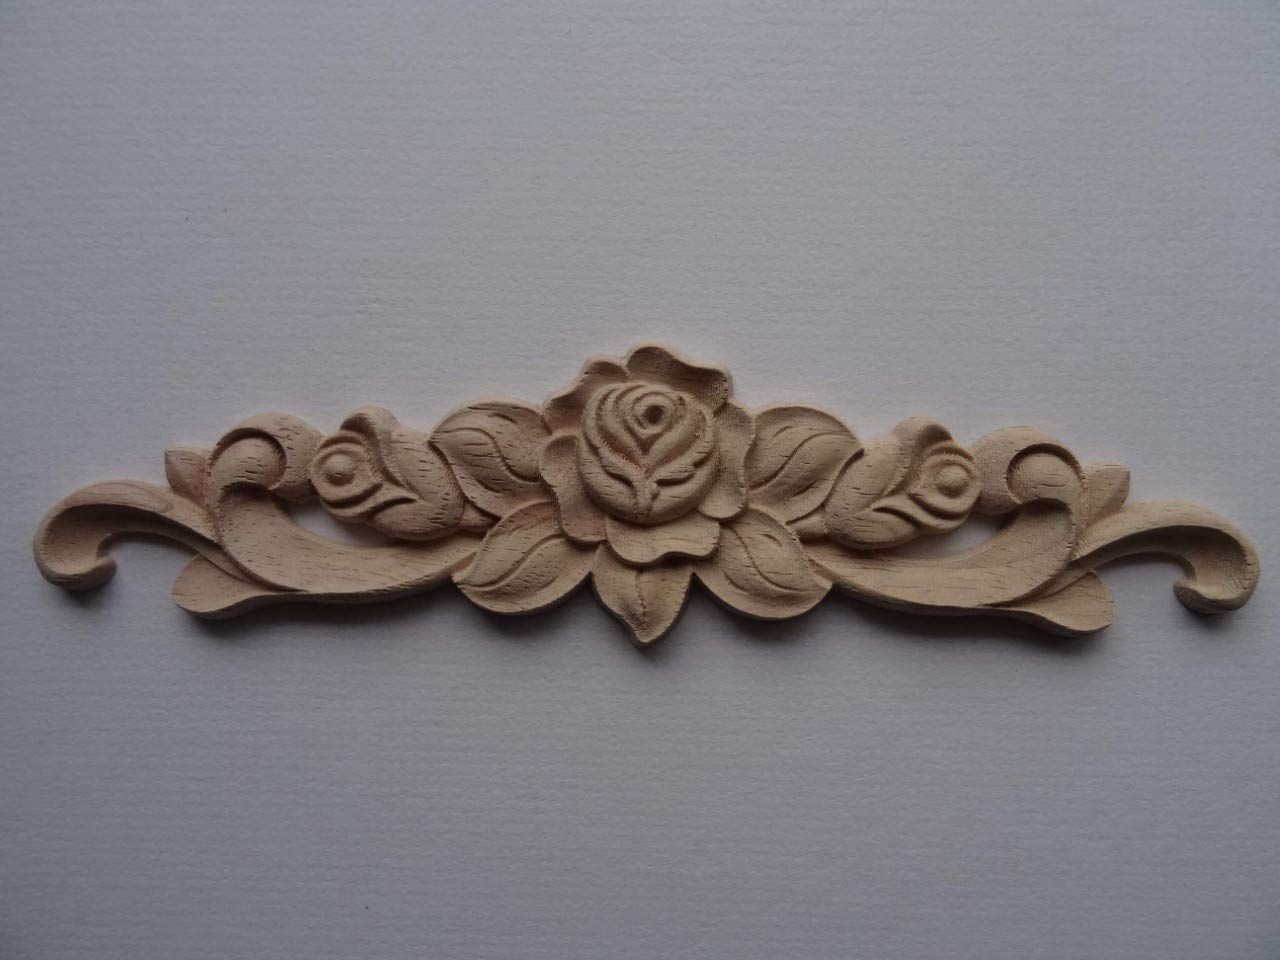 Decorative wooden rose and scroll center applique onlay furniture